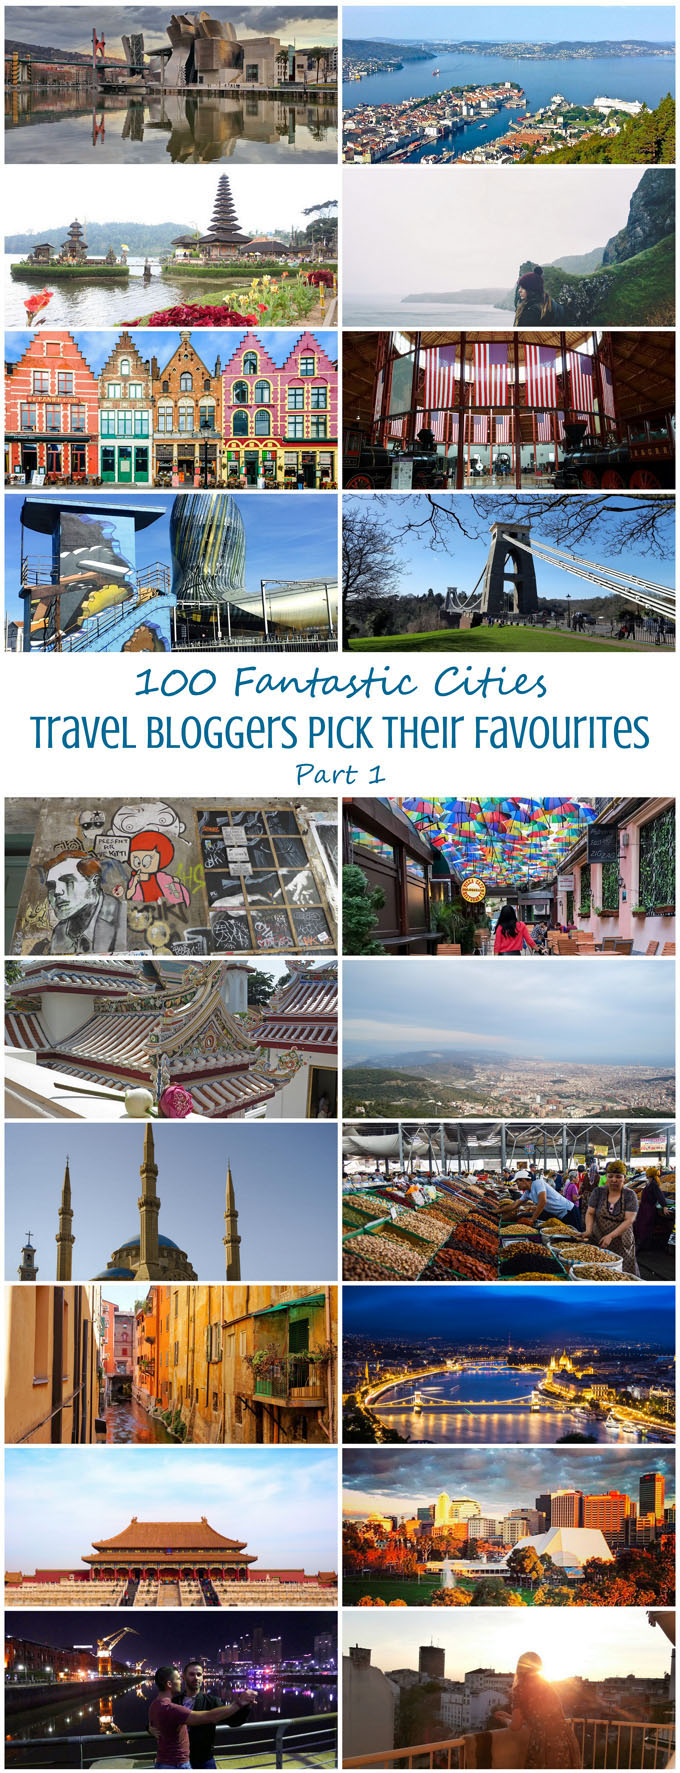 100 Fantastic Cities for City Breaks, as chosen by travel bloggers (part 1)